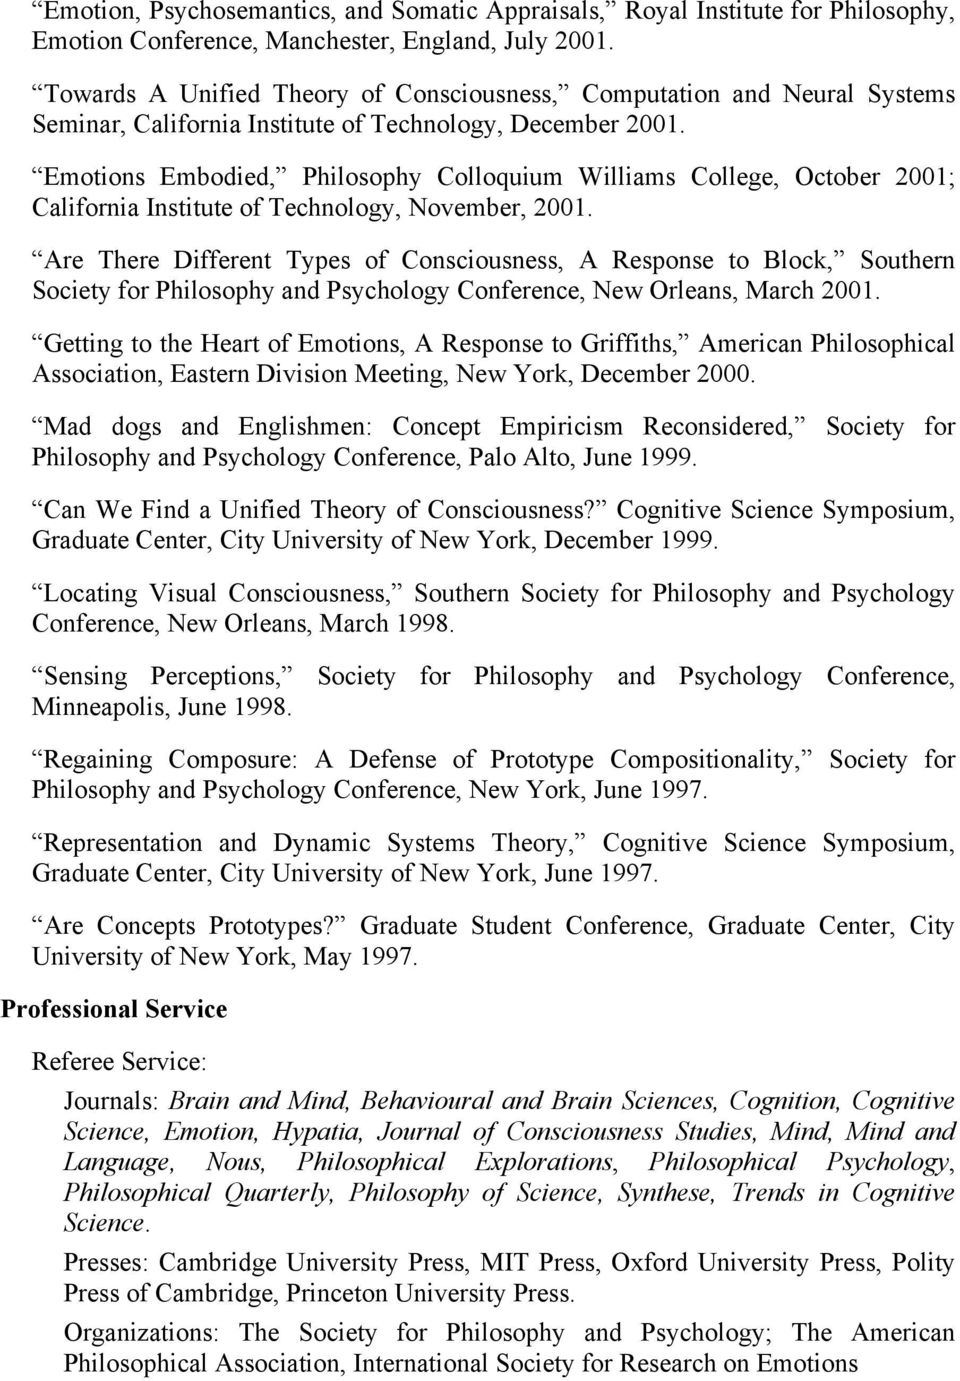 Emotions Embodied, Philosophy Colloquium Williams College, October 2001; California Institute of Technology, November, 2001.